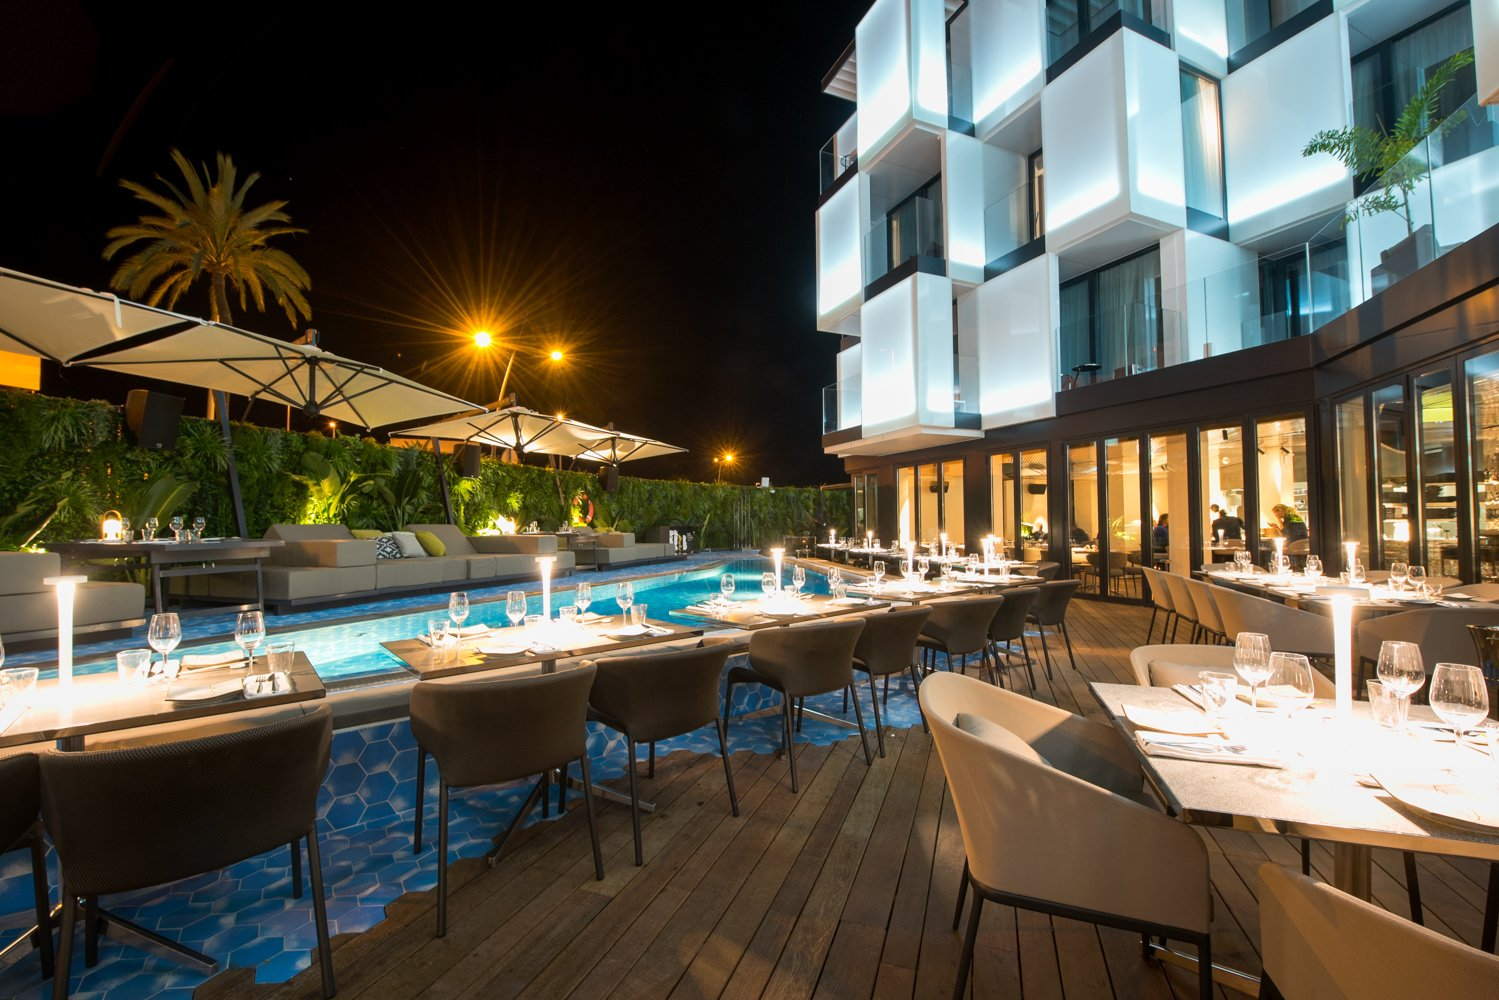 Outdoor, Decking Patio, Porch, Deck, Swimming Pools, Tubs, Shower, Wood Patio, Porch, Deck, and Large Patio, Porch, Deck Opened in July 2017, Sir Joan is the first Sir Hotel property to operate in Spain. The 38-room hotel is situated in the center of Ibiza, overlooking the historic town center and neighboring ports.   Photo 2 of 11 in A New Hotel That Celebrates Ibiza's Maritime History and Love For Parties